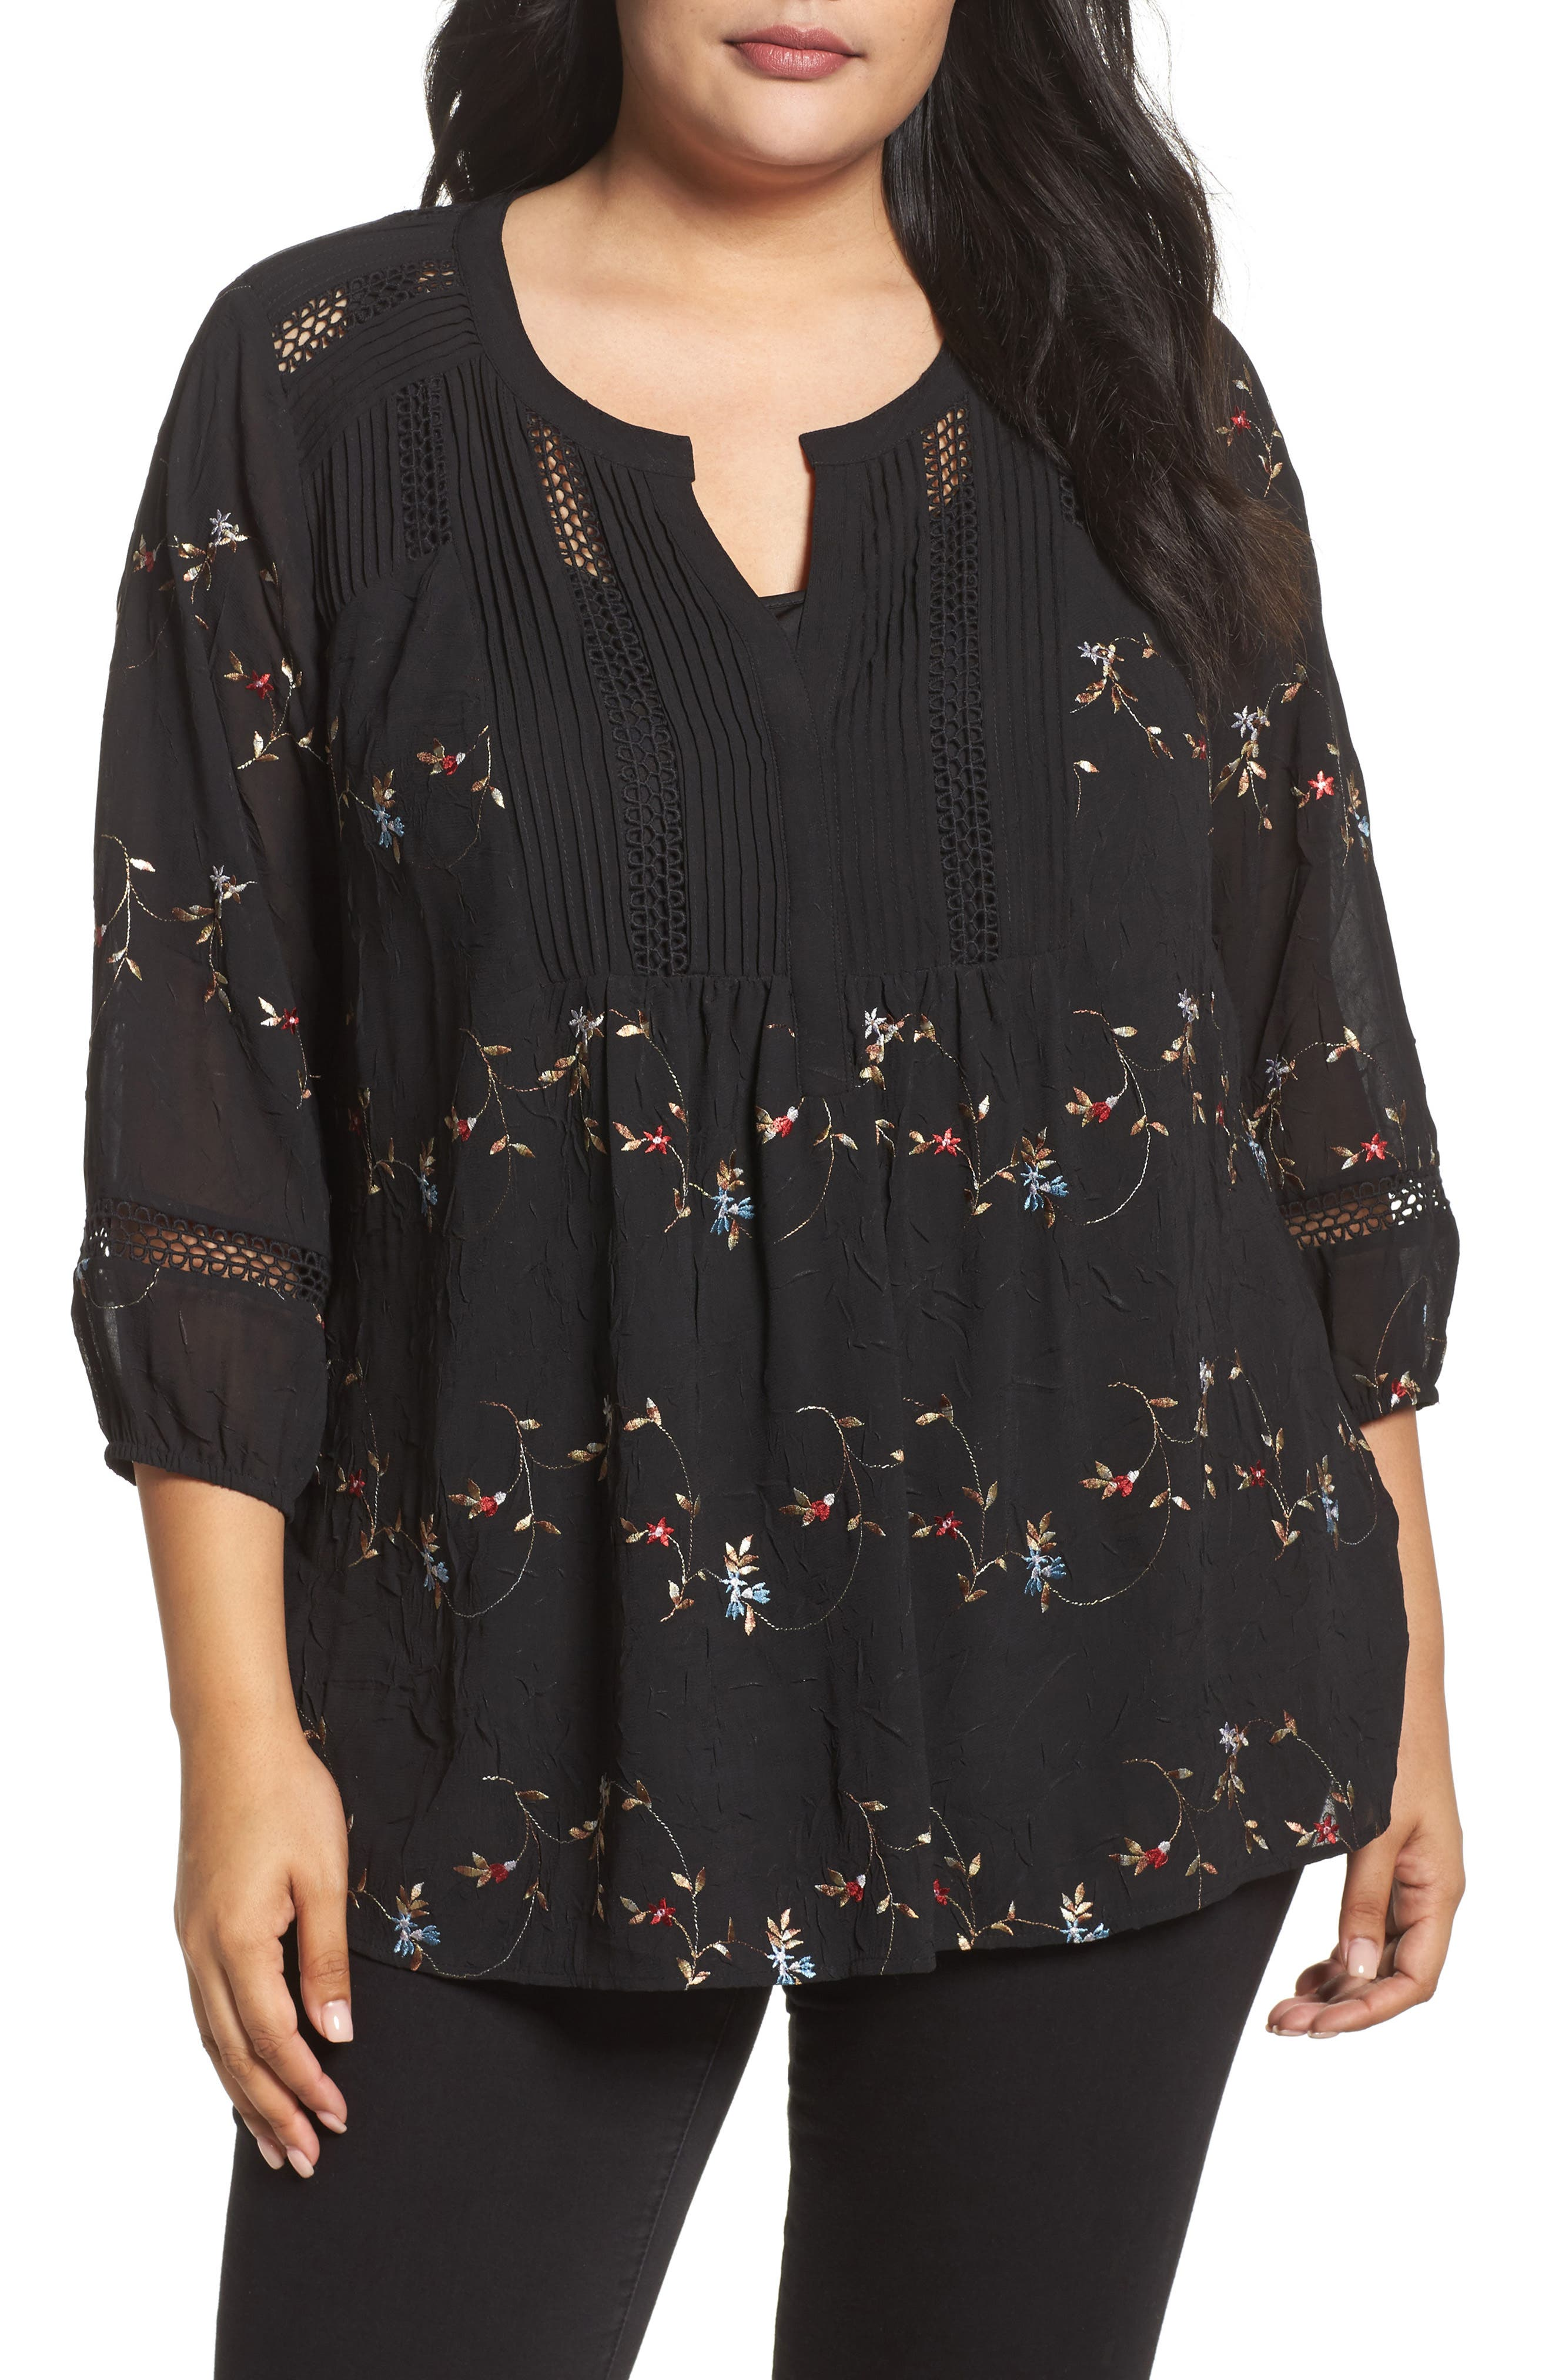 Daniel Rainn Floral Embroidered Top (Plus Size)